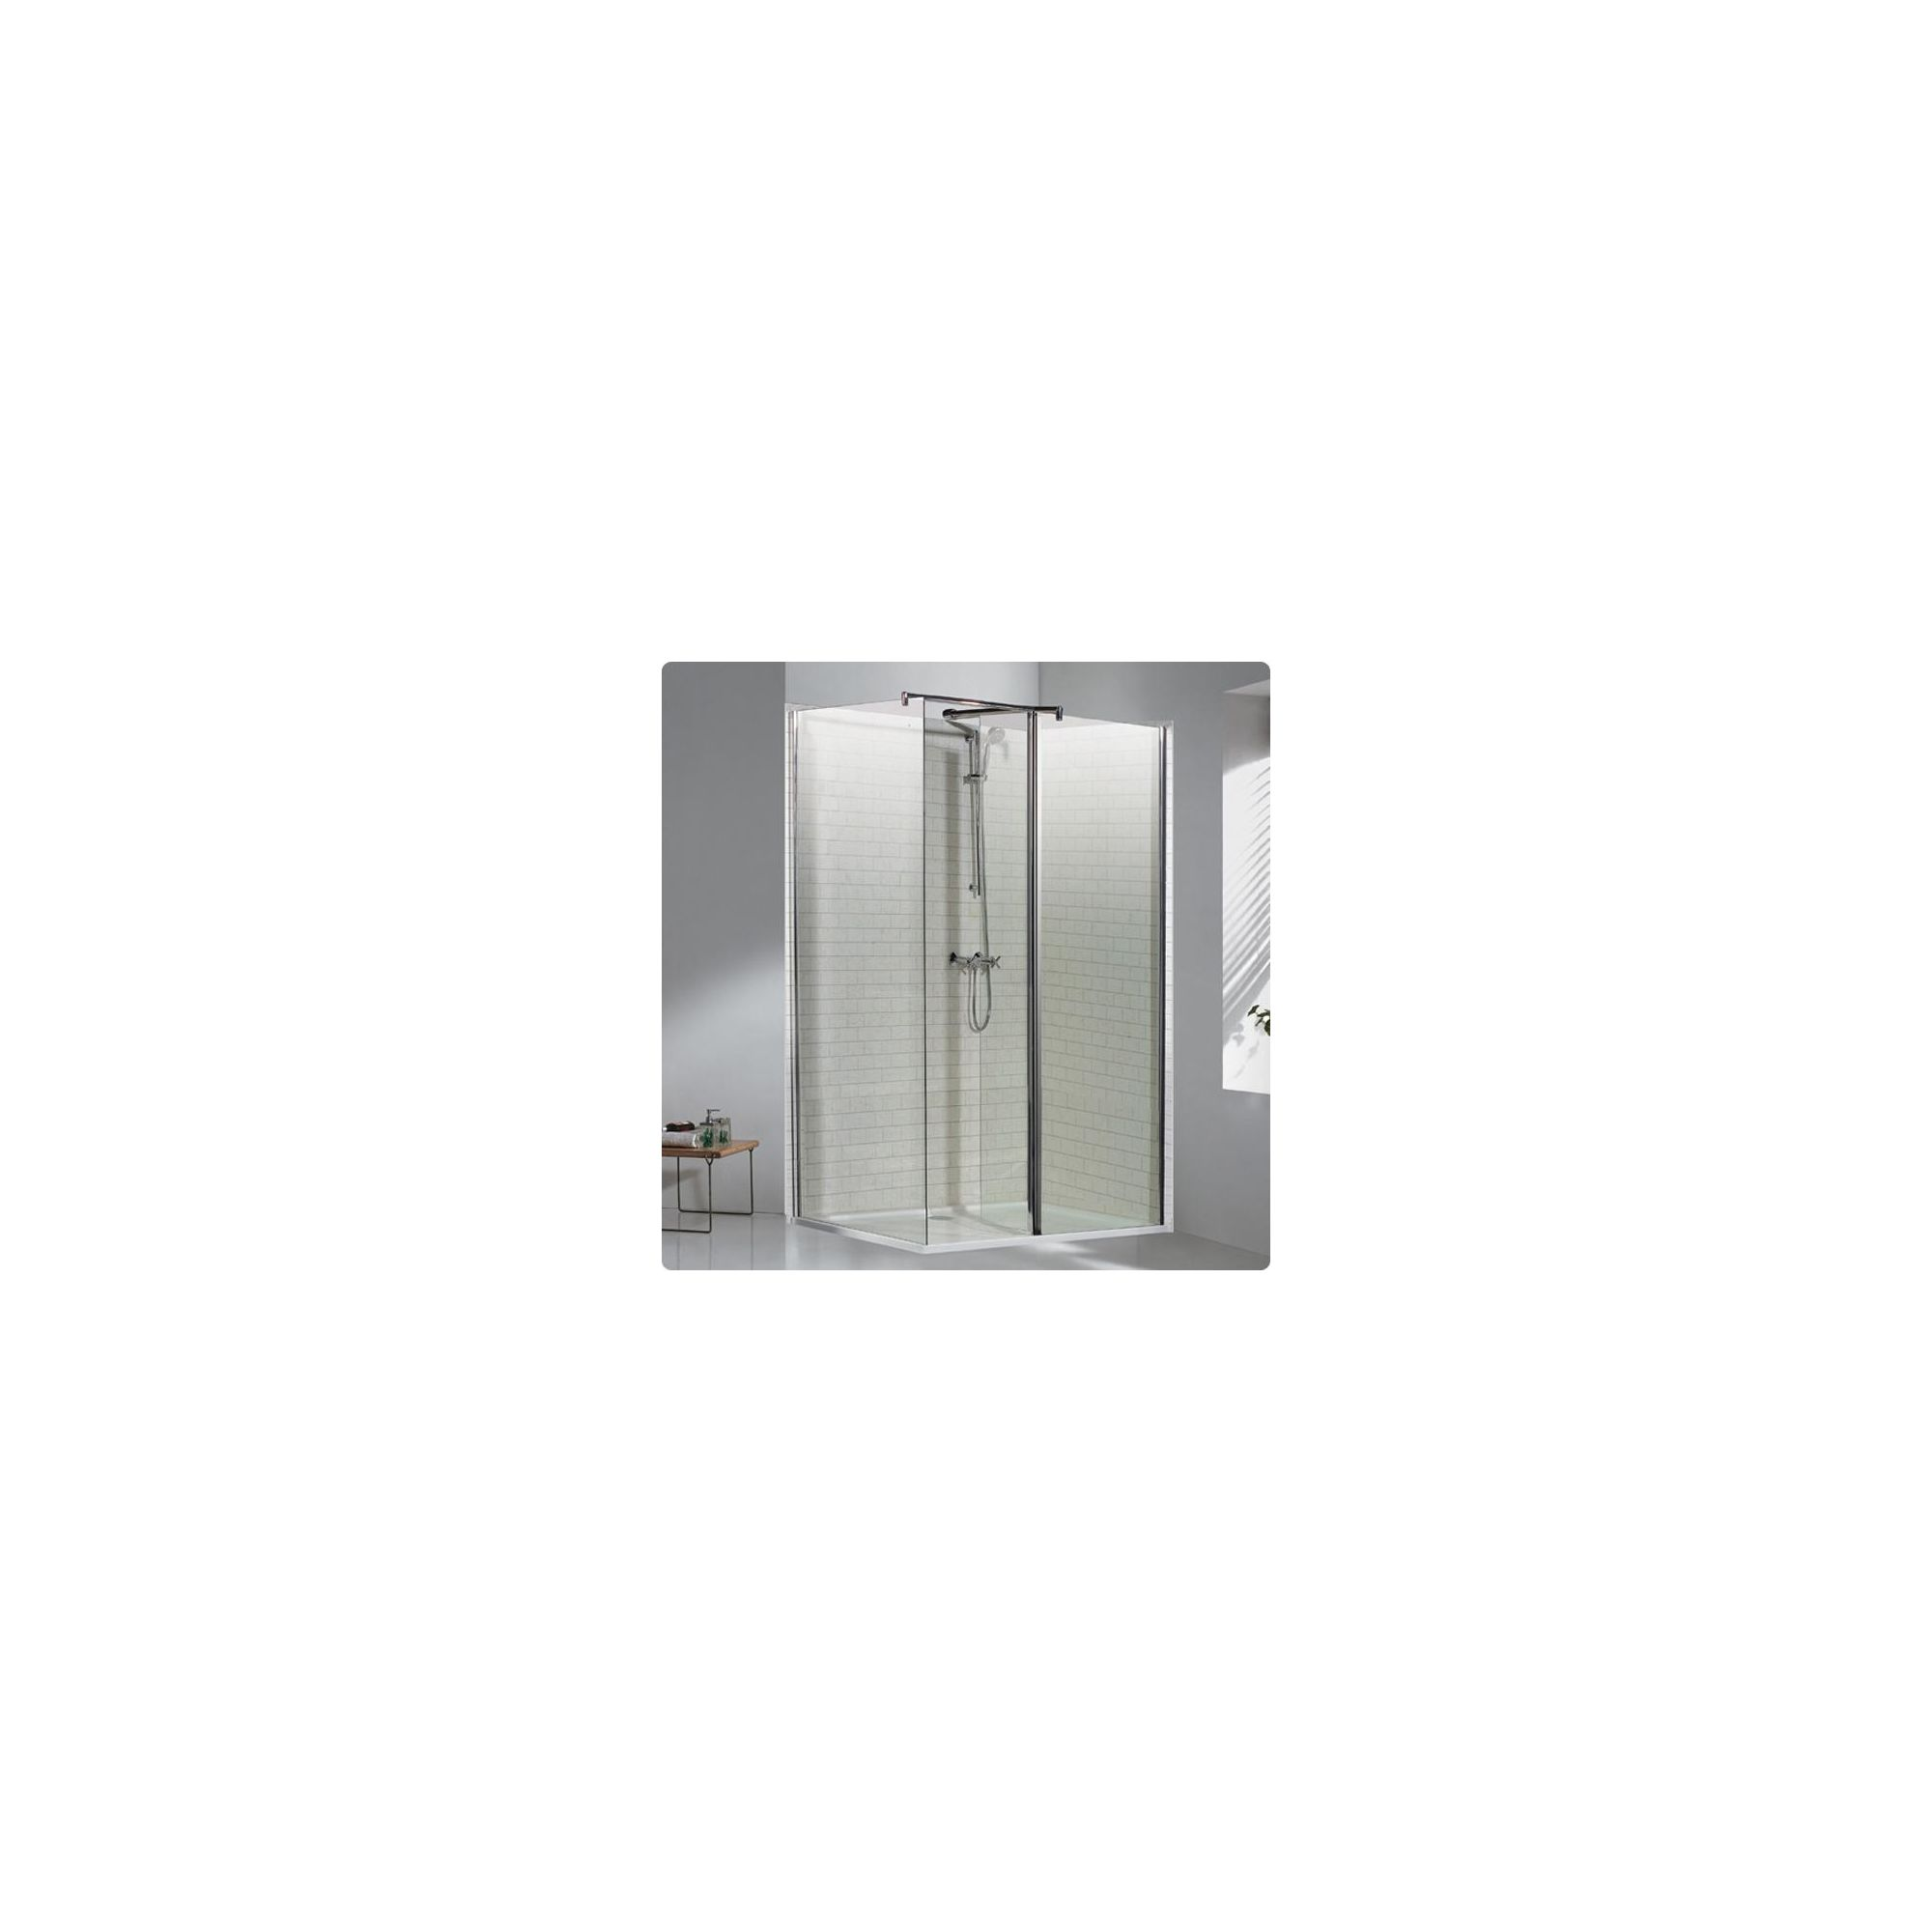 Duchy Choice Silver Walk-In Shower Enclosure 1700mm x 700mm (Complete with Tray), 6mm Glass at Tesco Direct